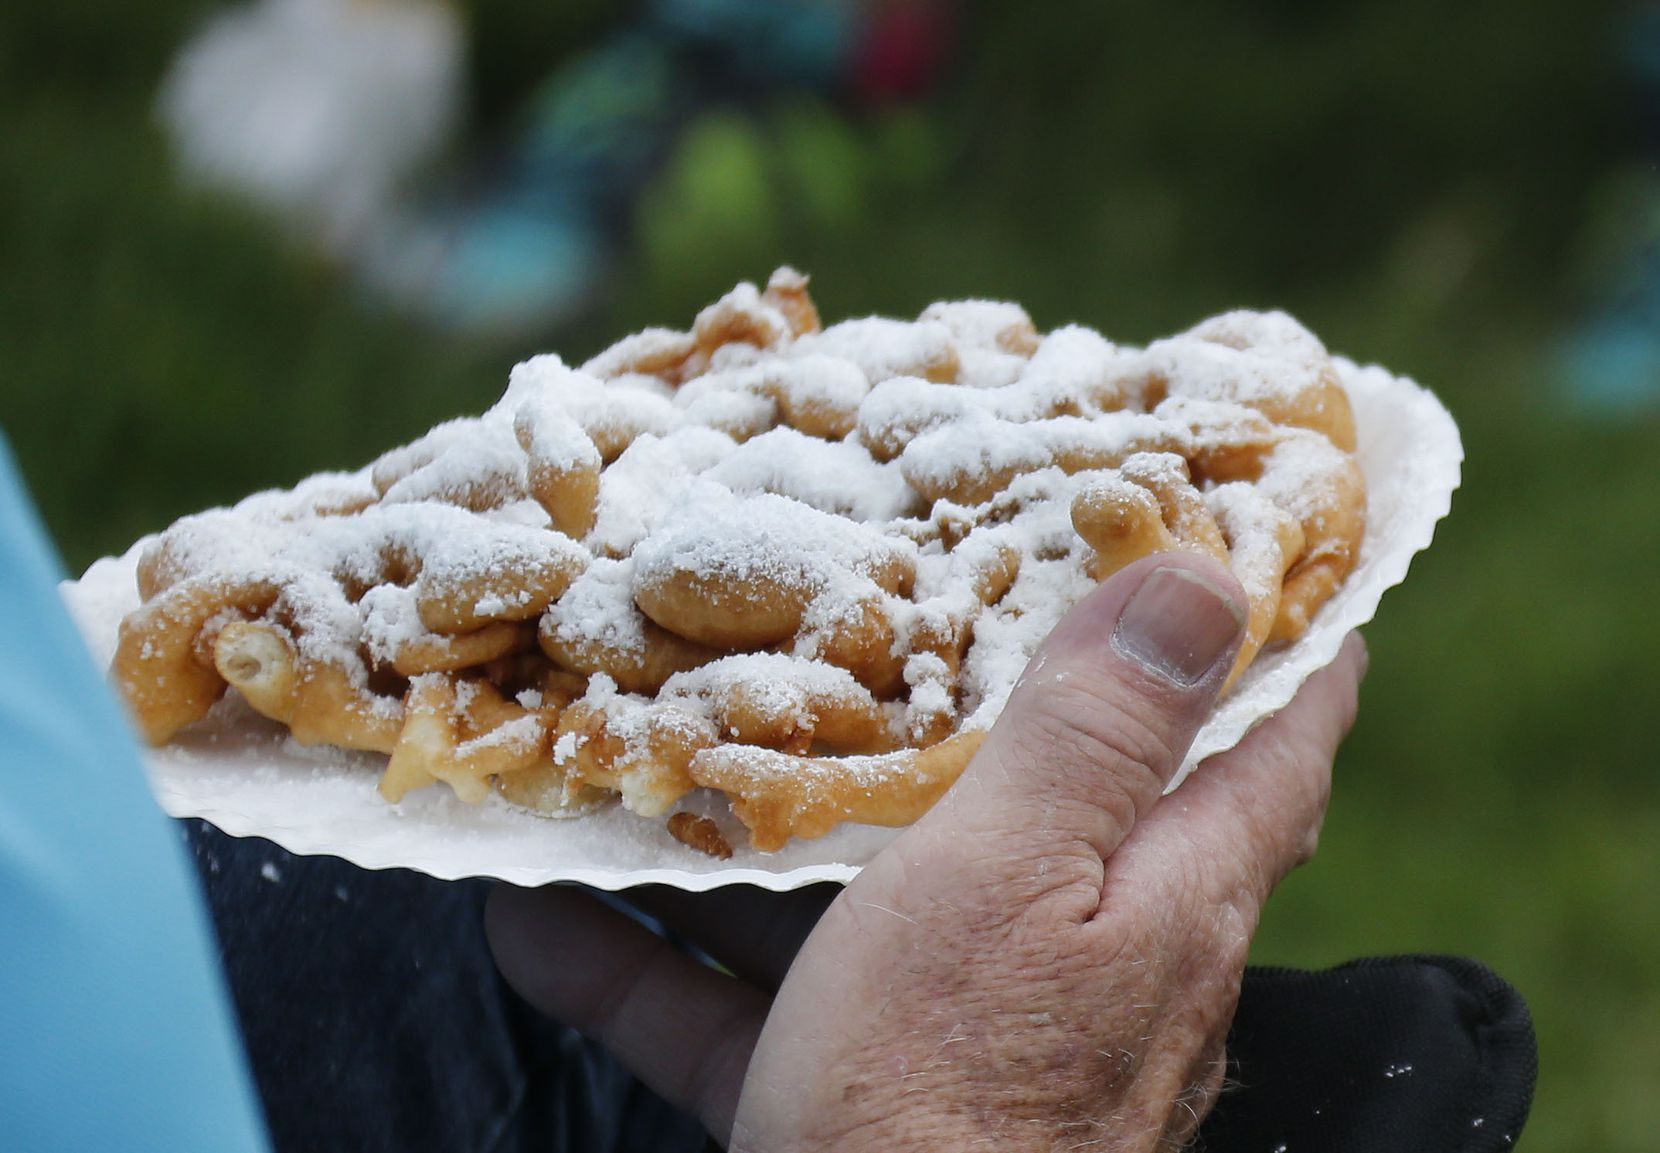 Funnel cakes, if you can believe it, have only been at the fair since the '80s.